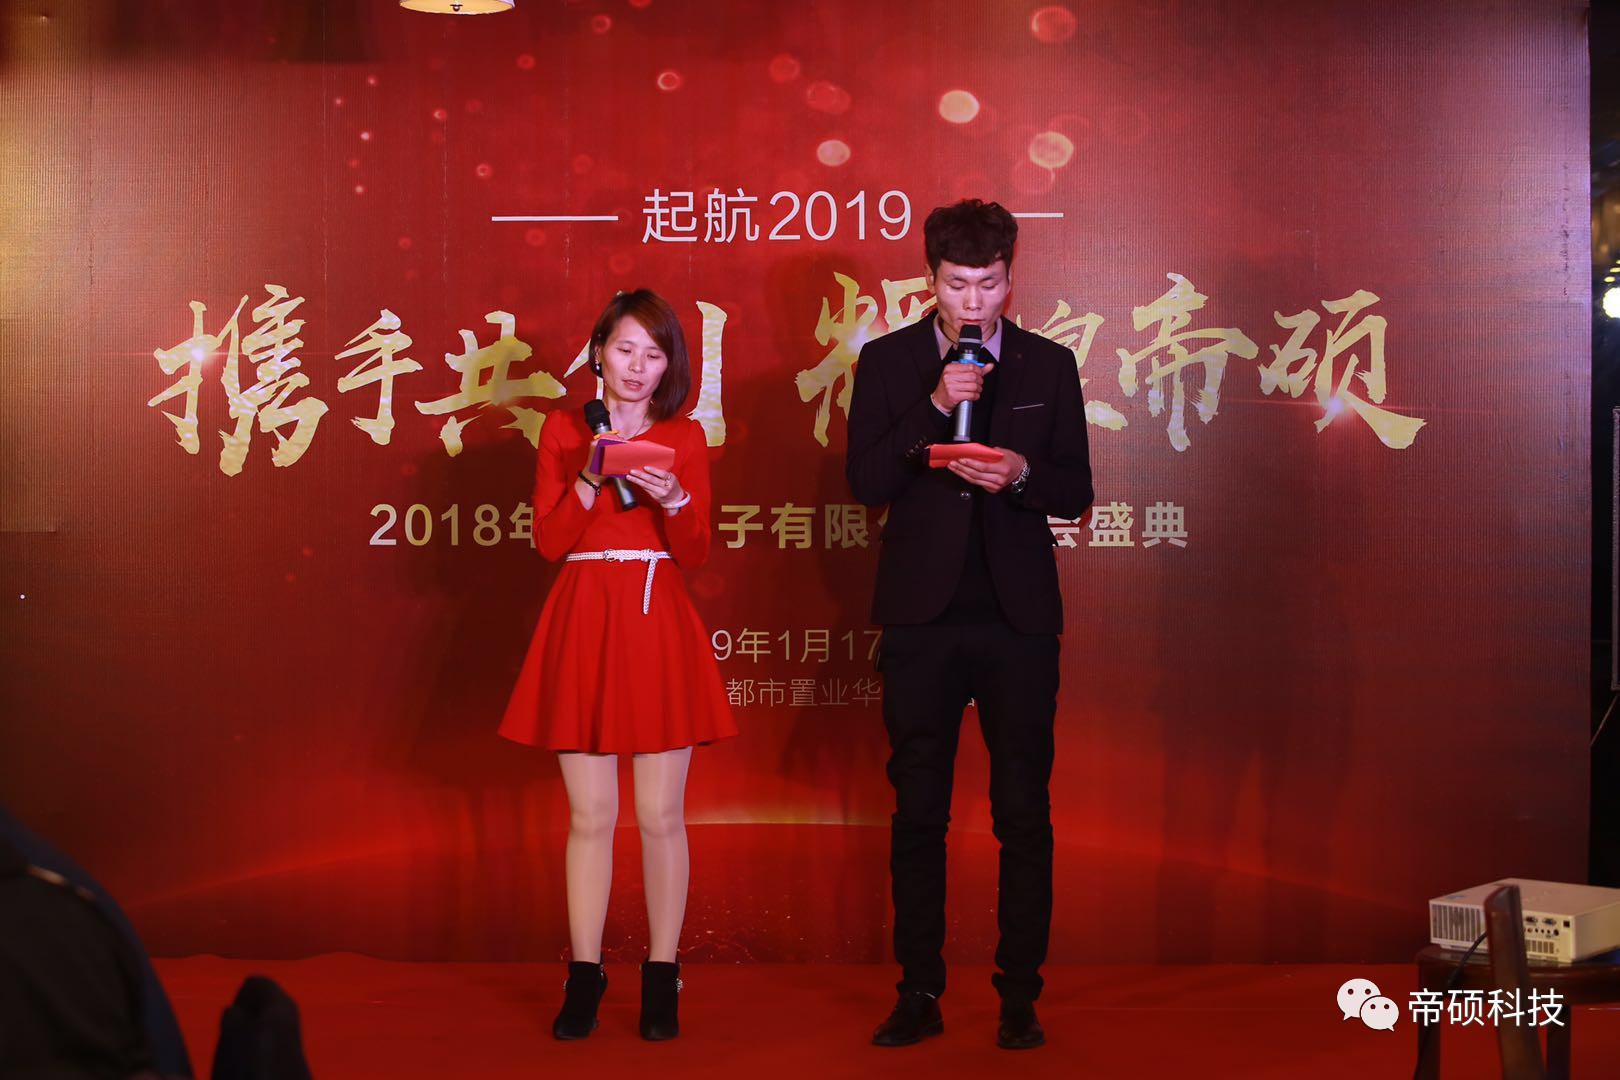 2019 SuZhou Dishuo Annual Meeting